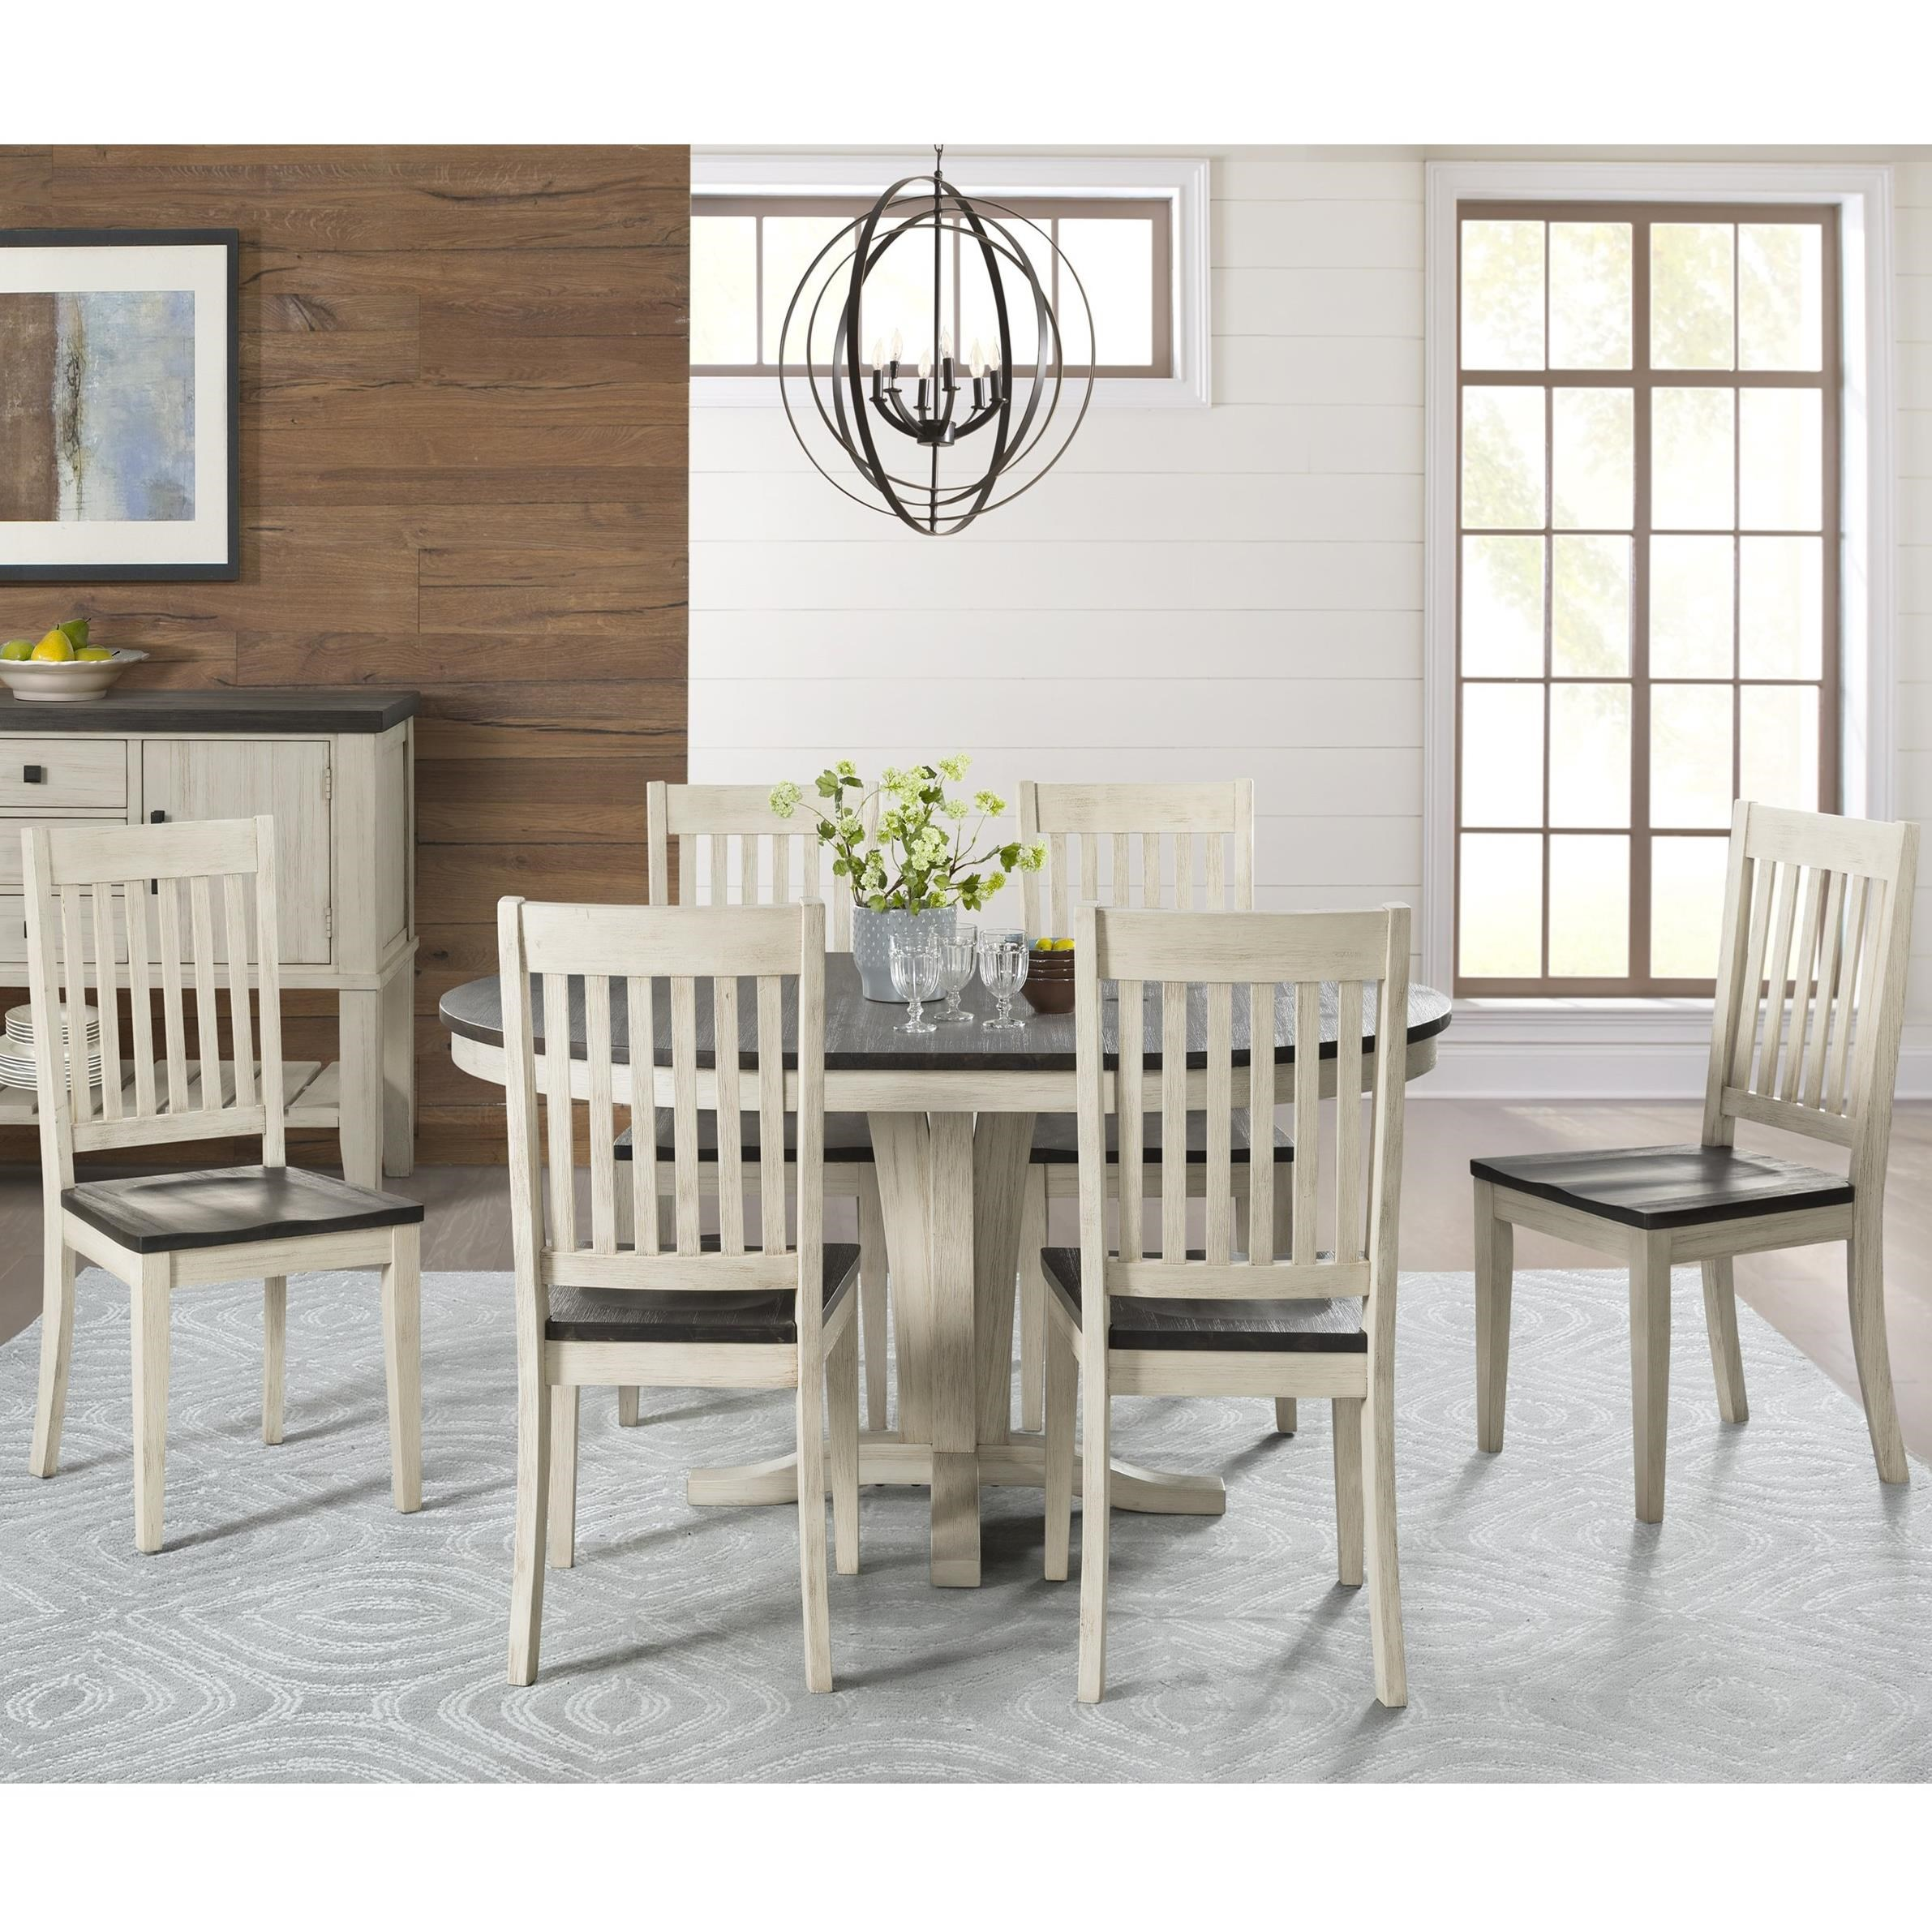 Huron Pedestal Table and Chair Set by A-A at Walker's Furniture